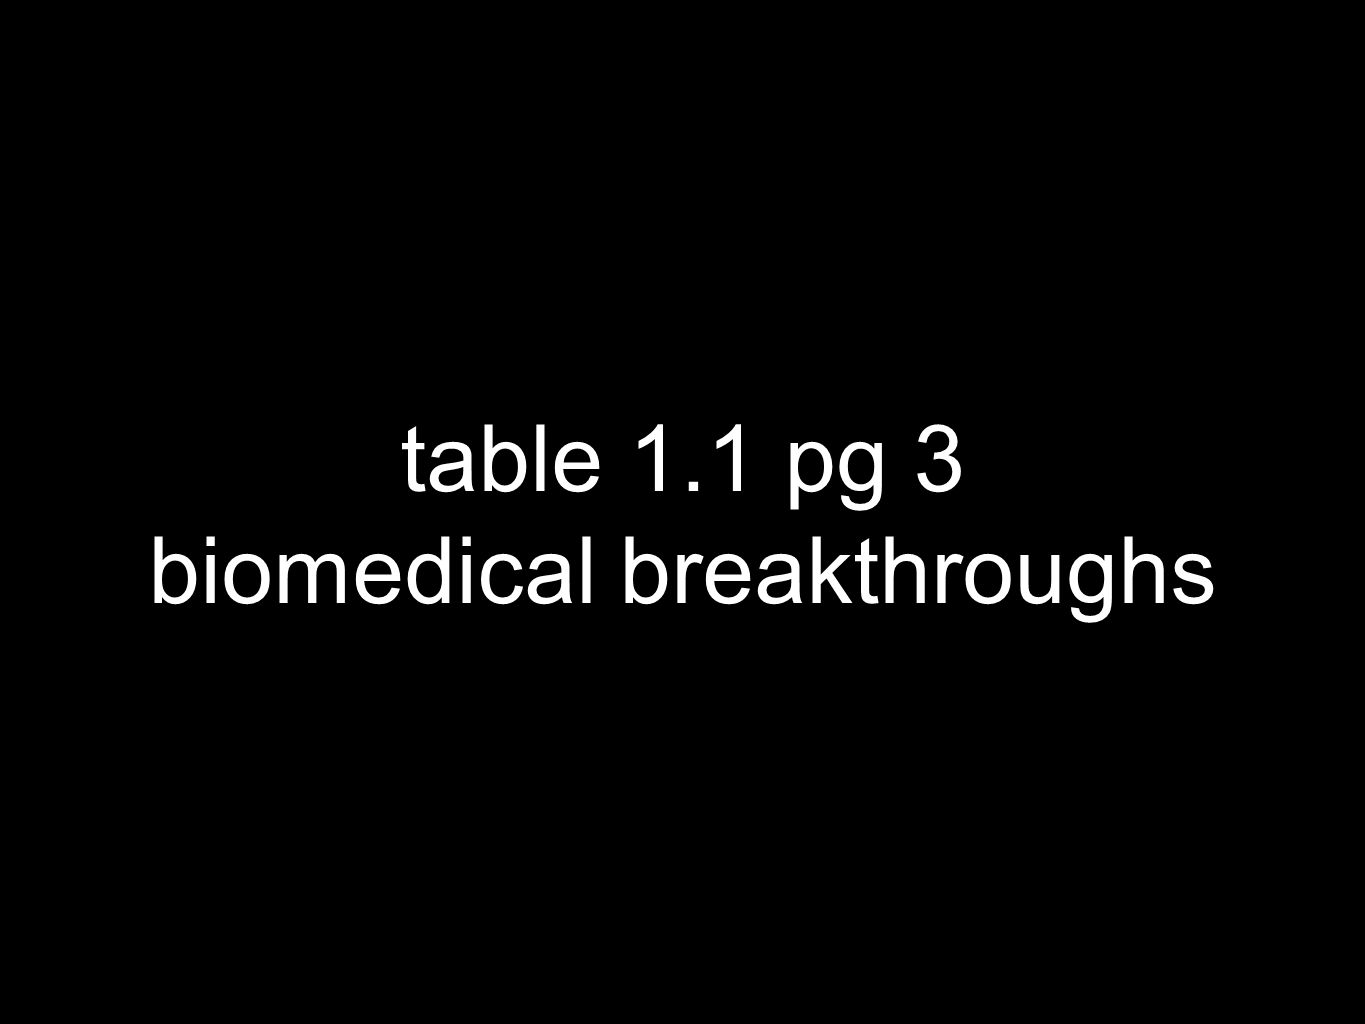 table 1.1 pg 3 biomedical breakthroughs